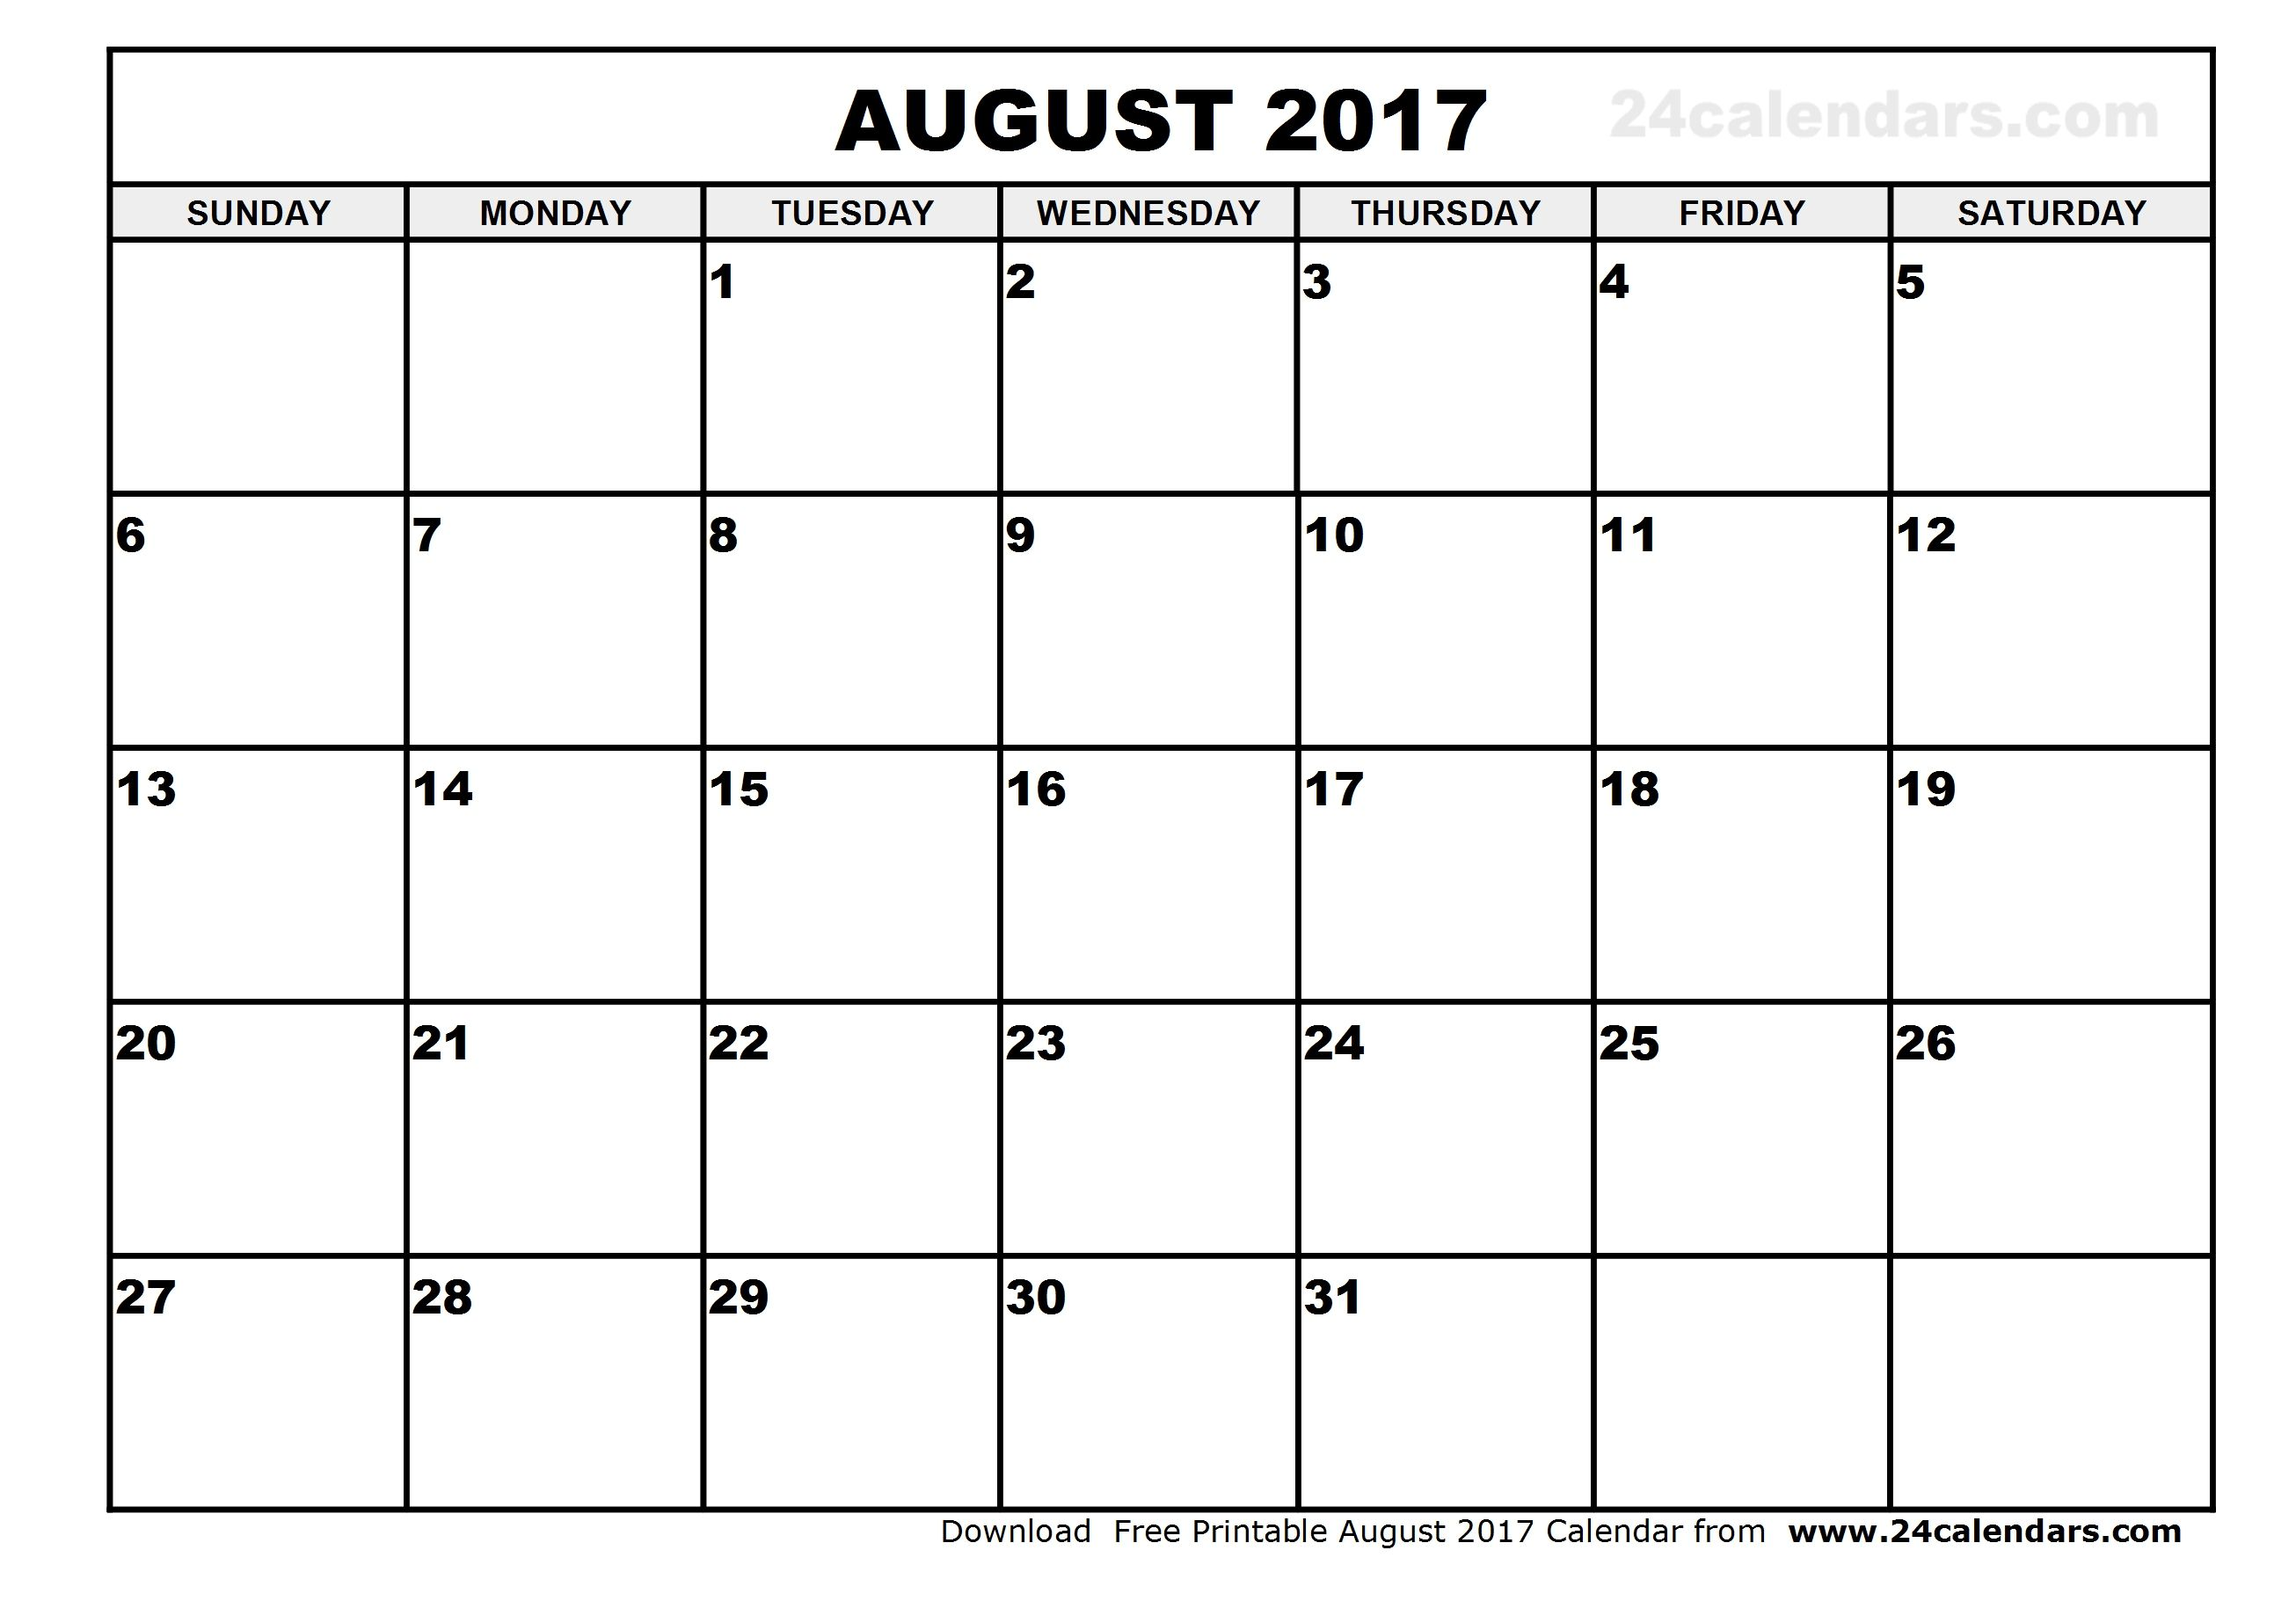 Best Free August 2017 Calendar Printable Template With Images